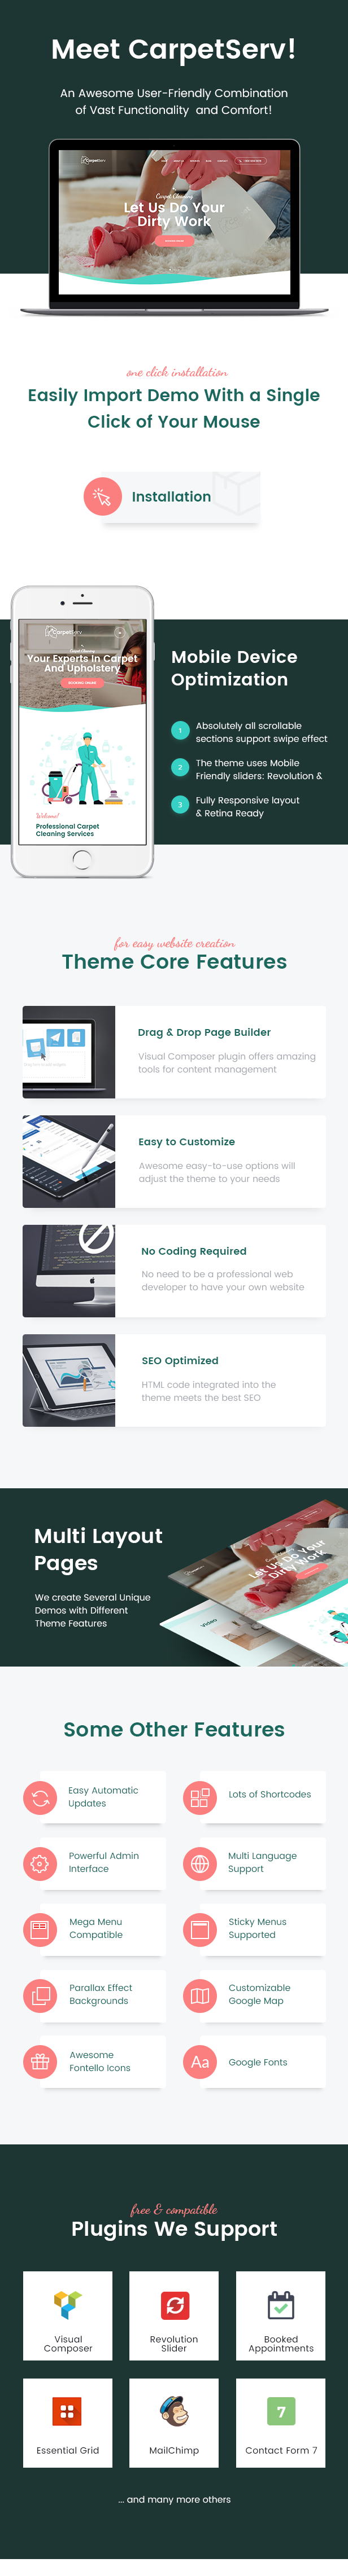 CarpetServ - Cleaning Company & Janitorial Services WordPress Theme